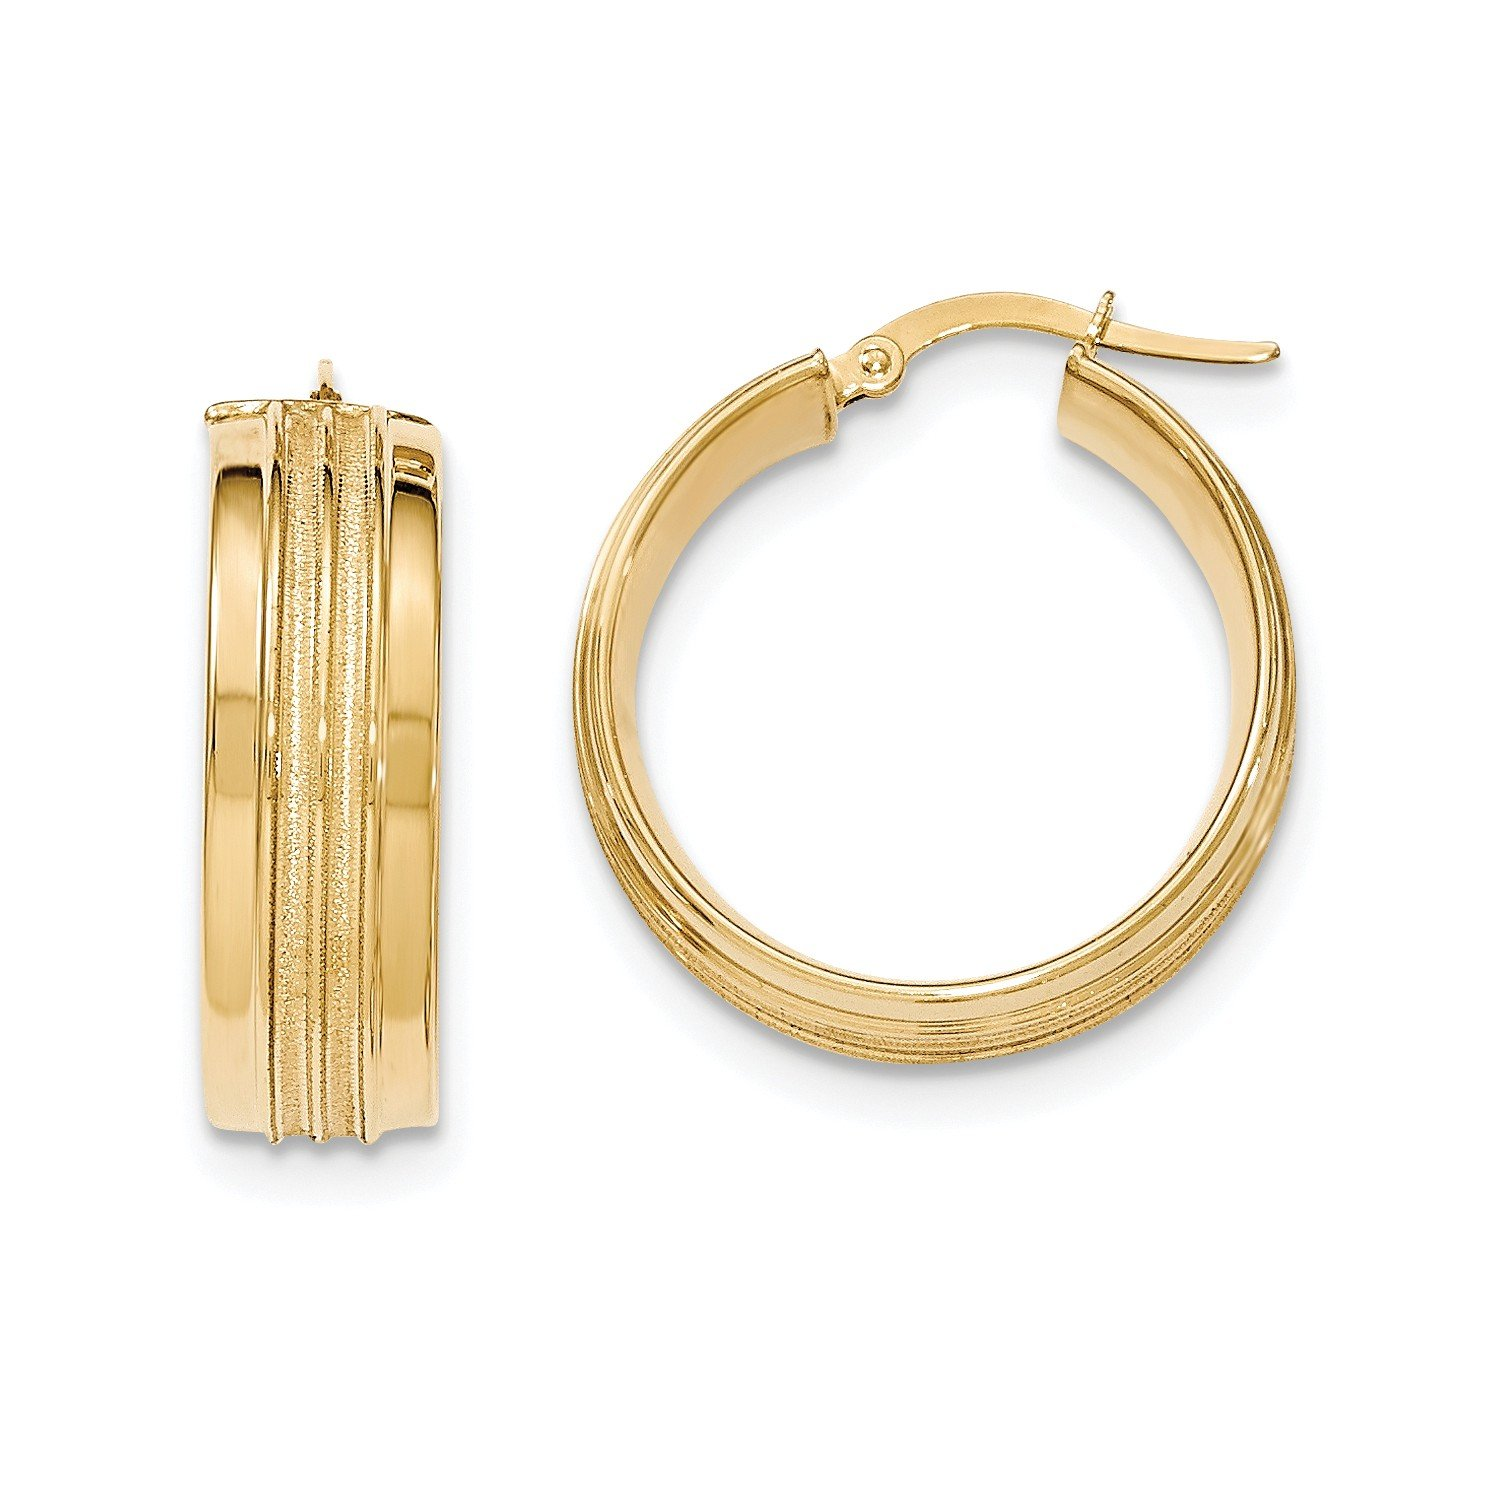 Roy Rose Jewelry 14K Yellow Gold Textured and Polished Hoop Earrings 26mm length